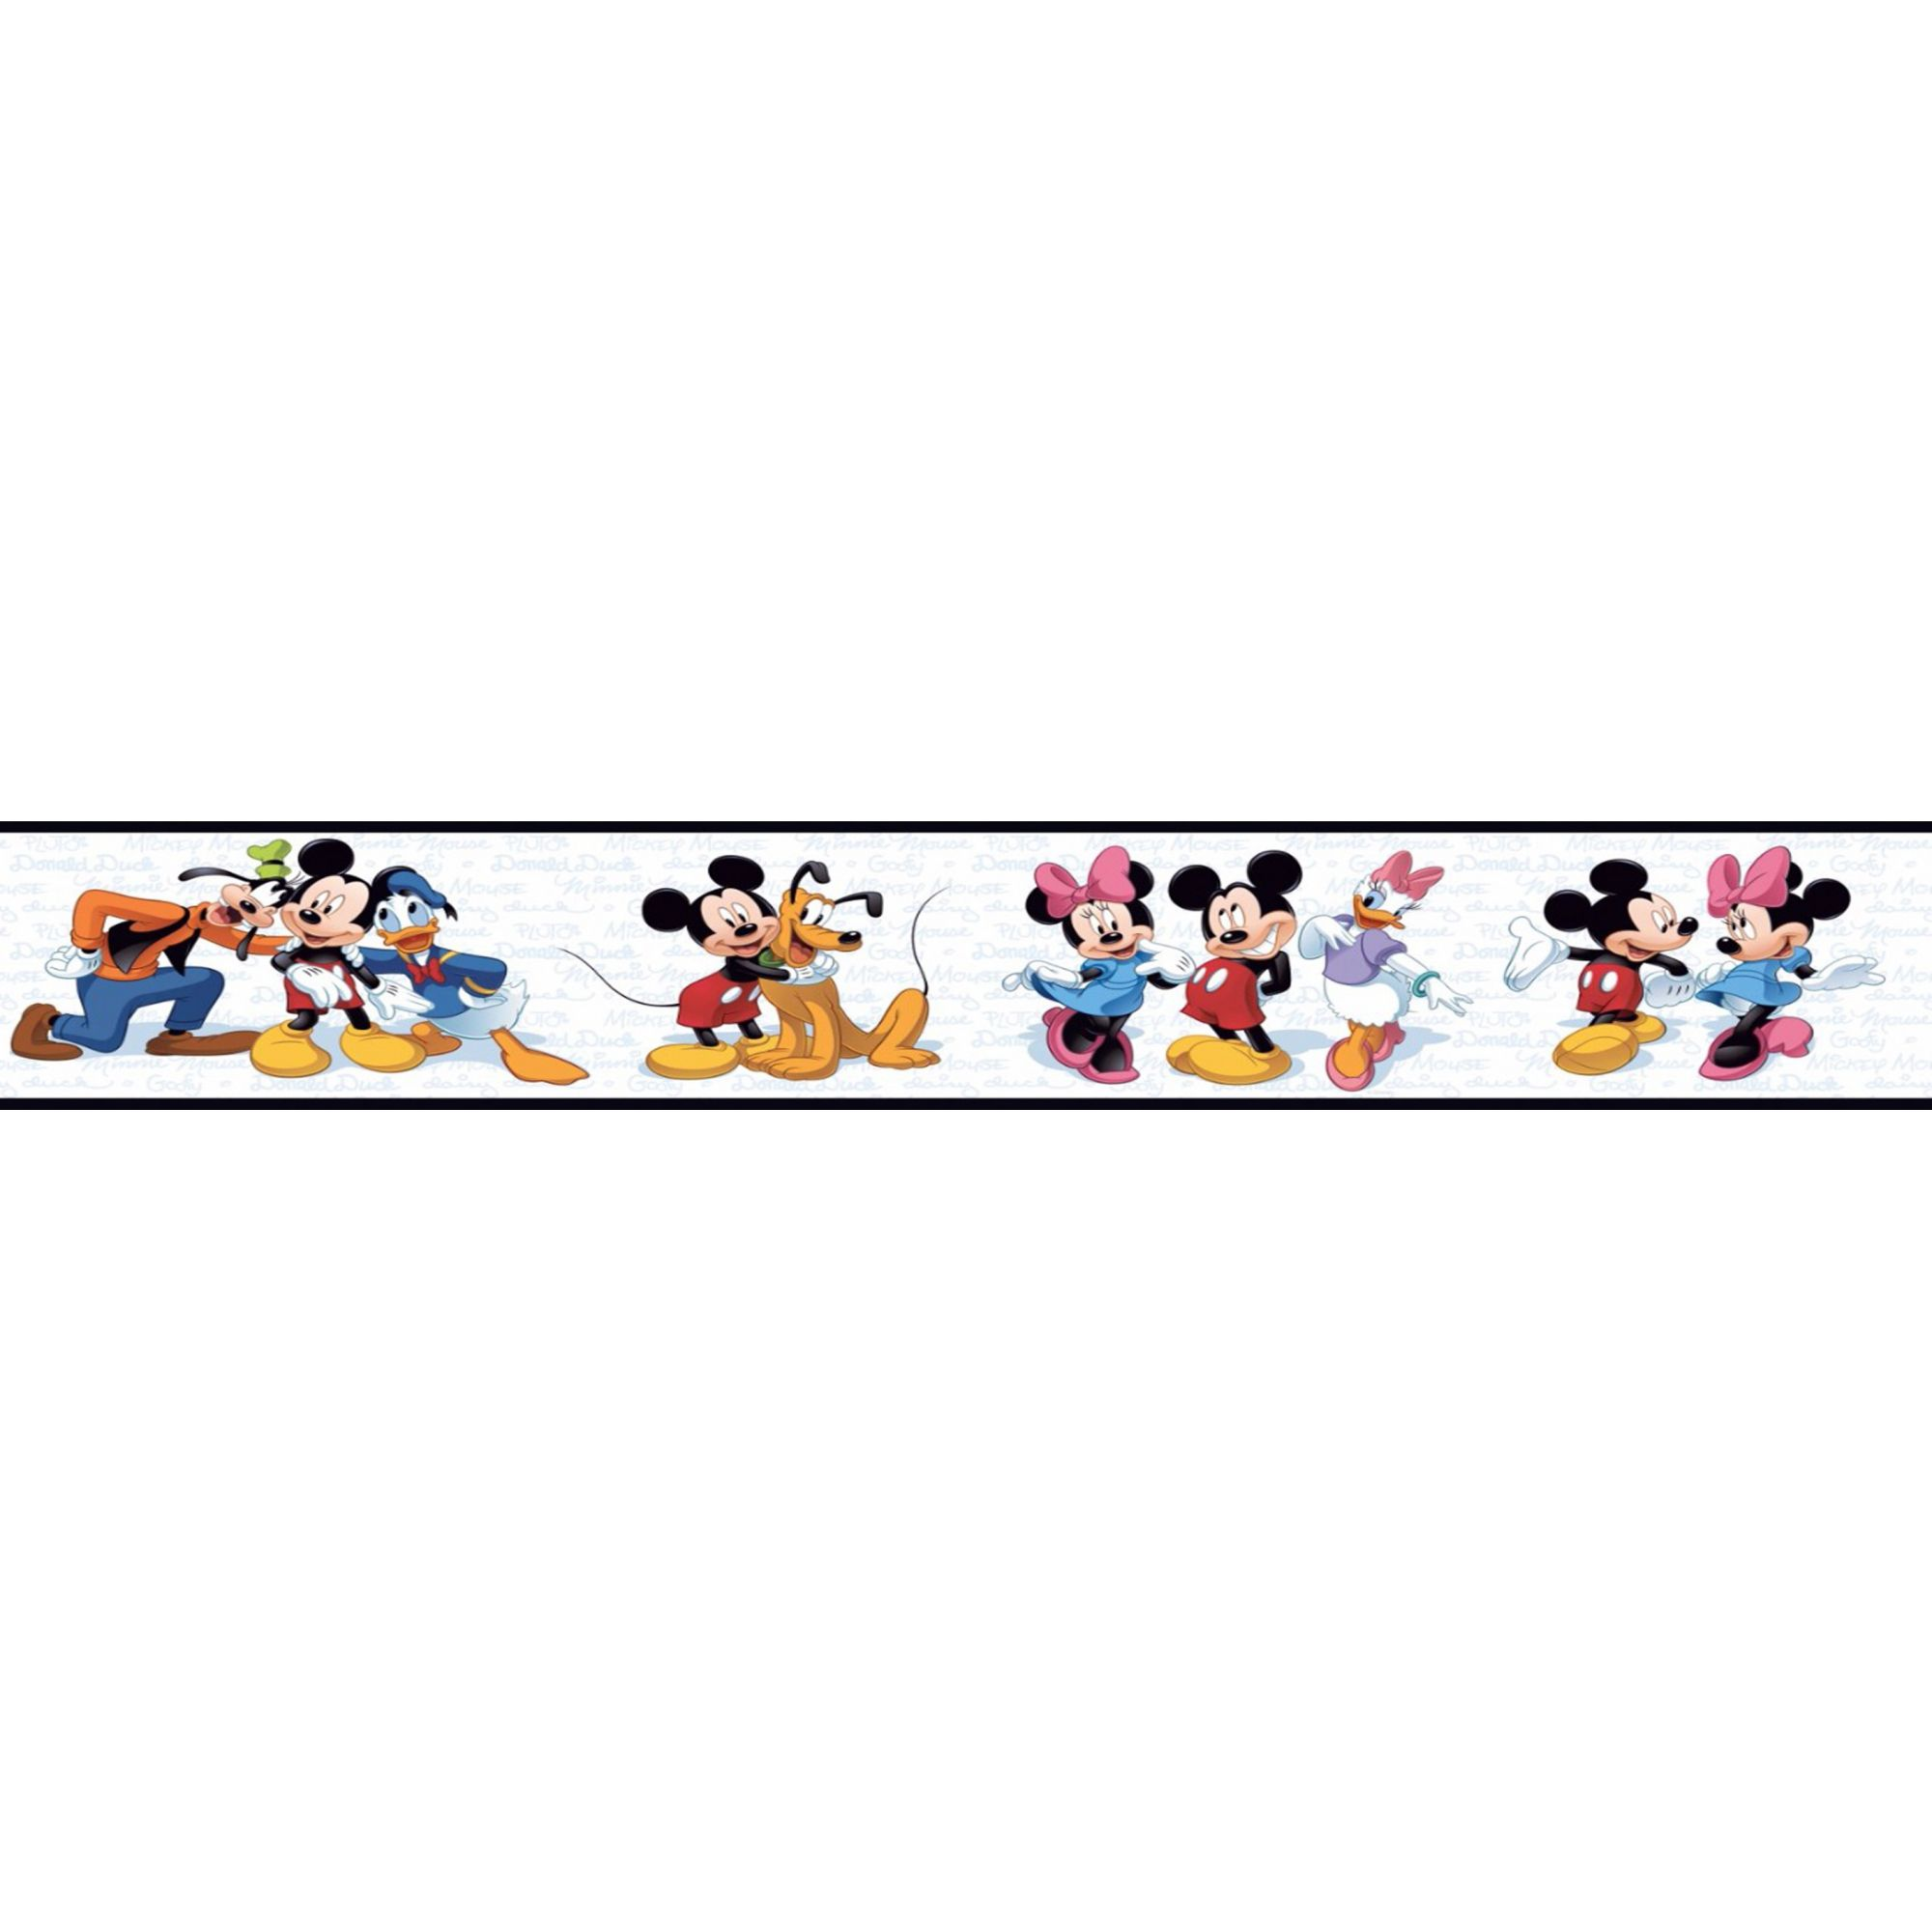 Faixa Decorativa Adesiva Turma do Mickey  - Final Decor